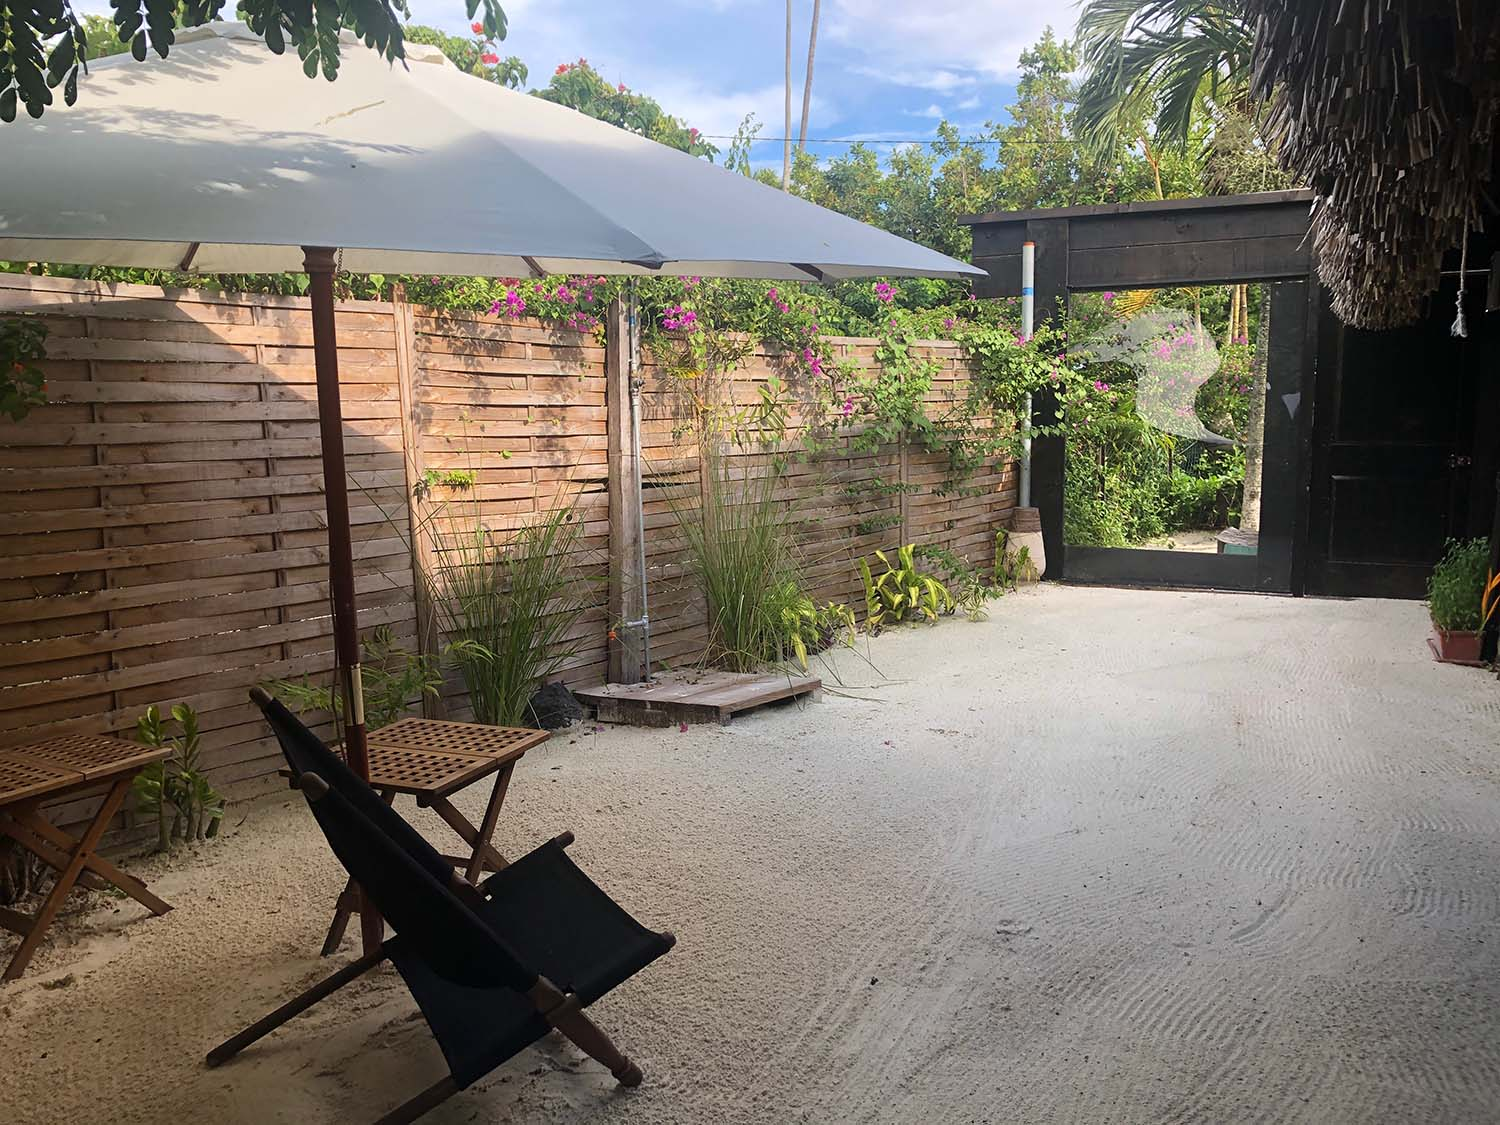 There is also an outside patio area where guests can relax before or after treatments.